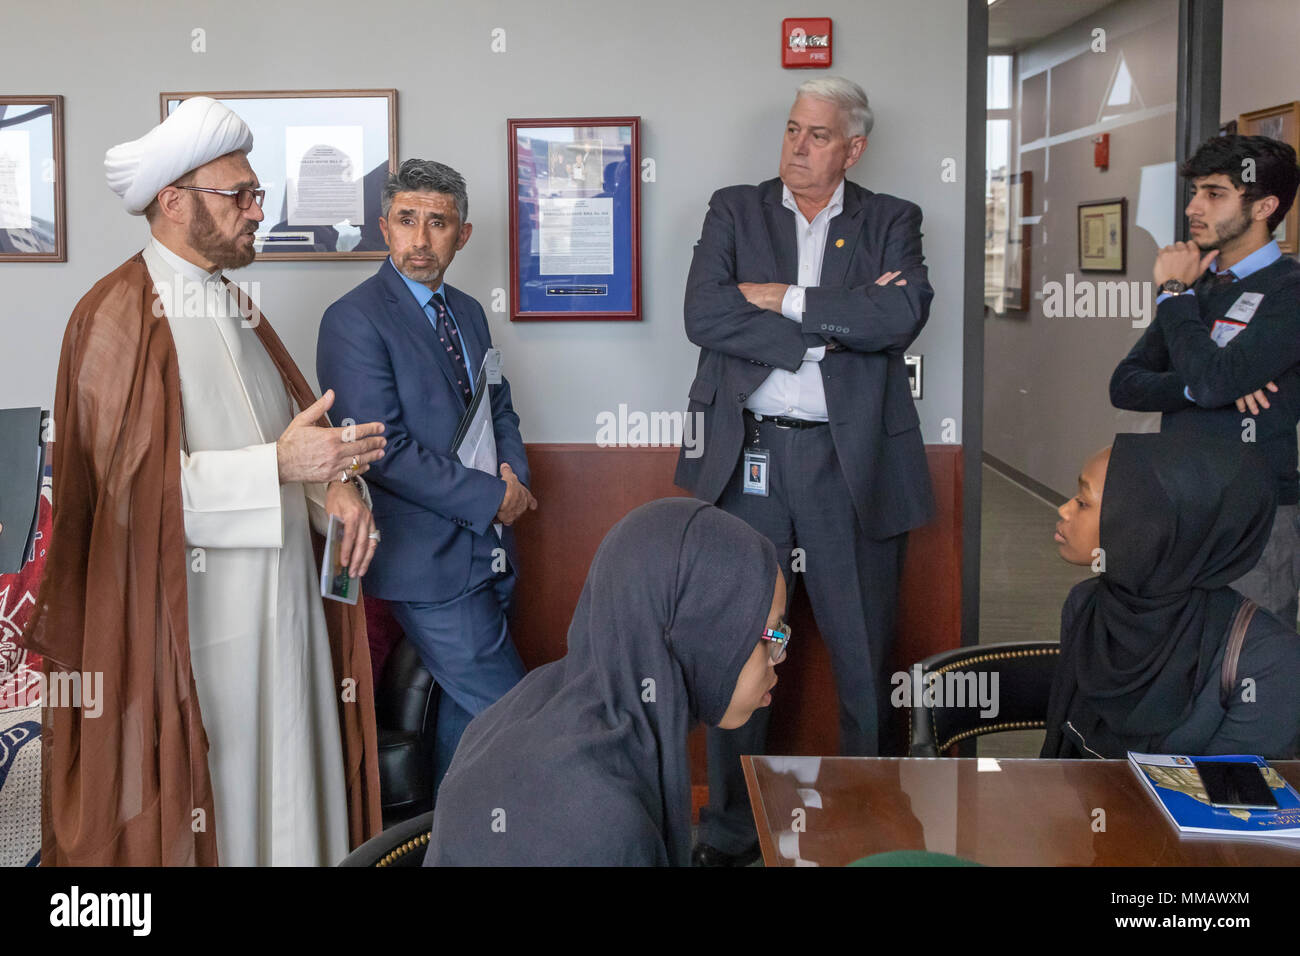 Lansing, Michigan - Imam Mohammad Ali Elahi speaks with Republican State Senator Ken Horn during the annual Michigan Muslim Capitol Day at the state c - Stock Image